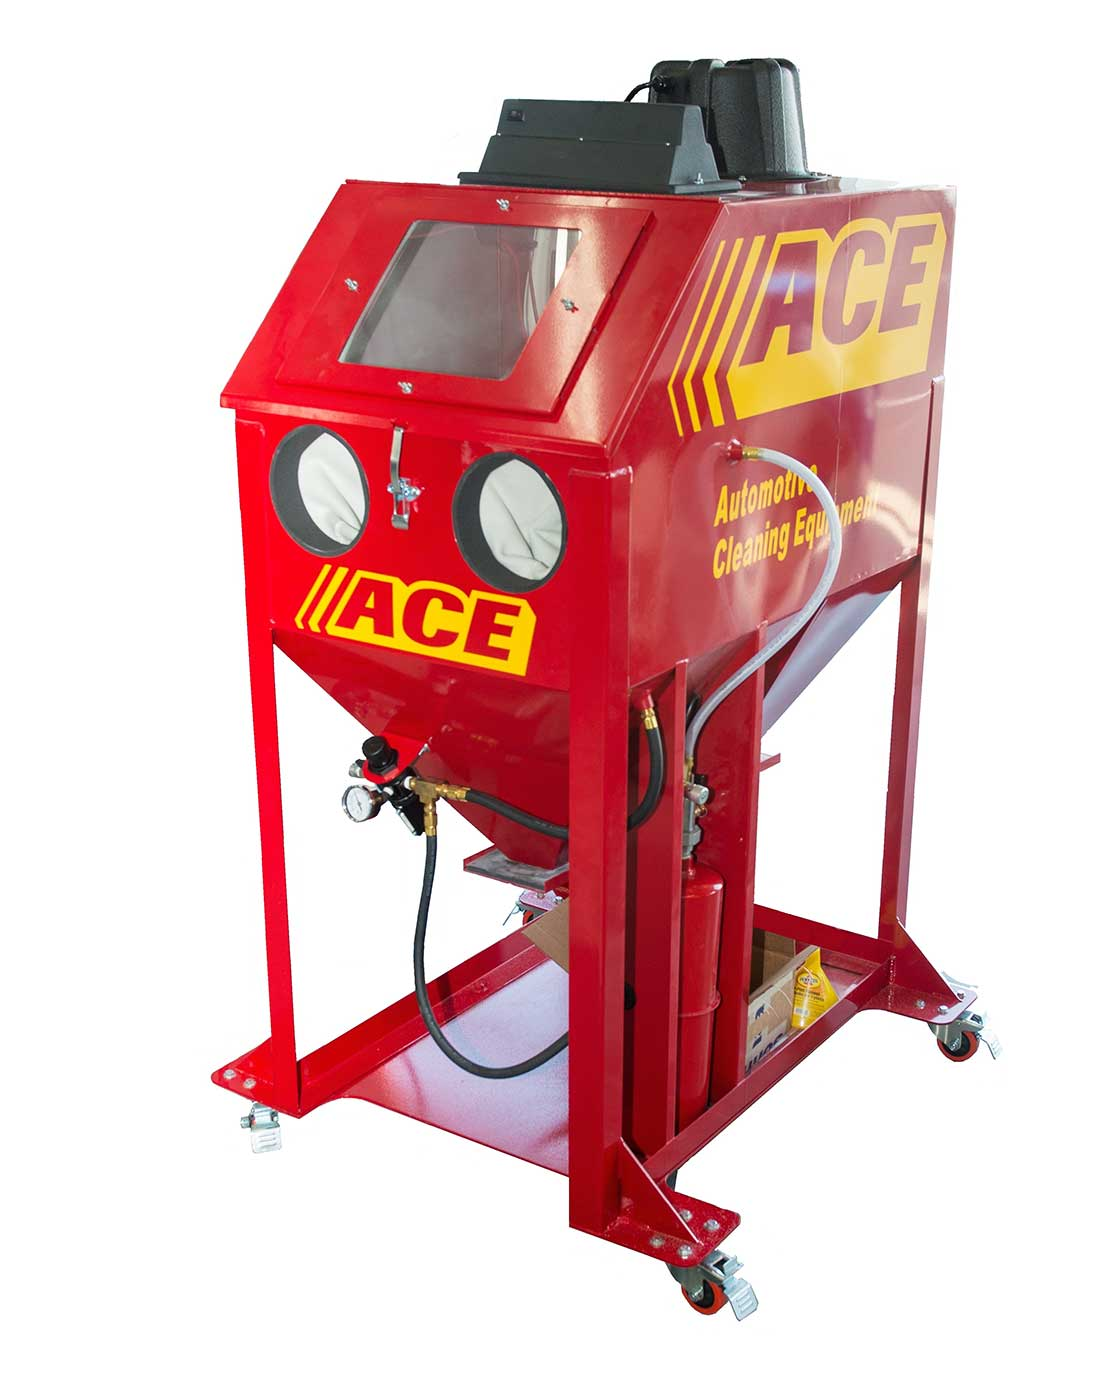 all new ACE SODA PLUS Soda Blast Cabinet with built-in Dust Collector